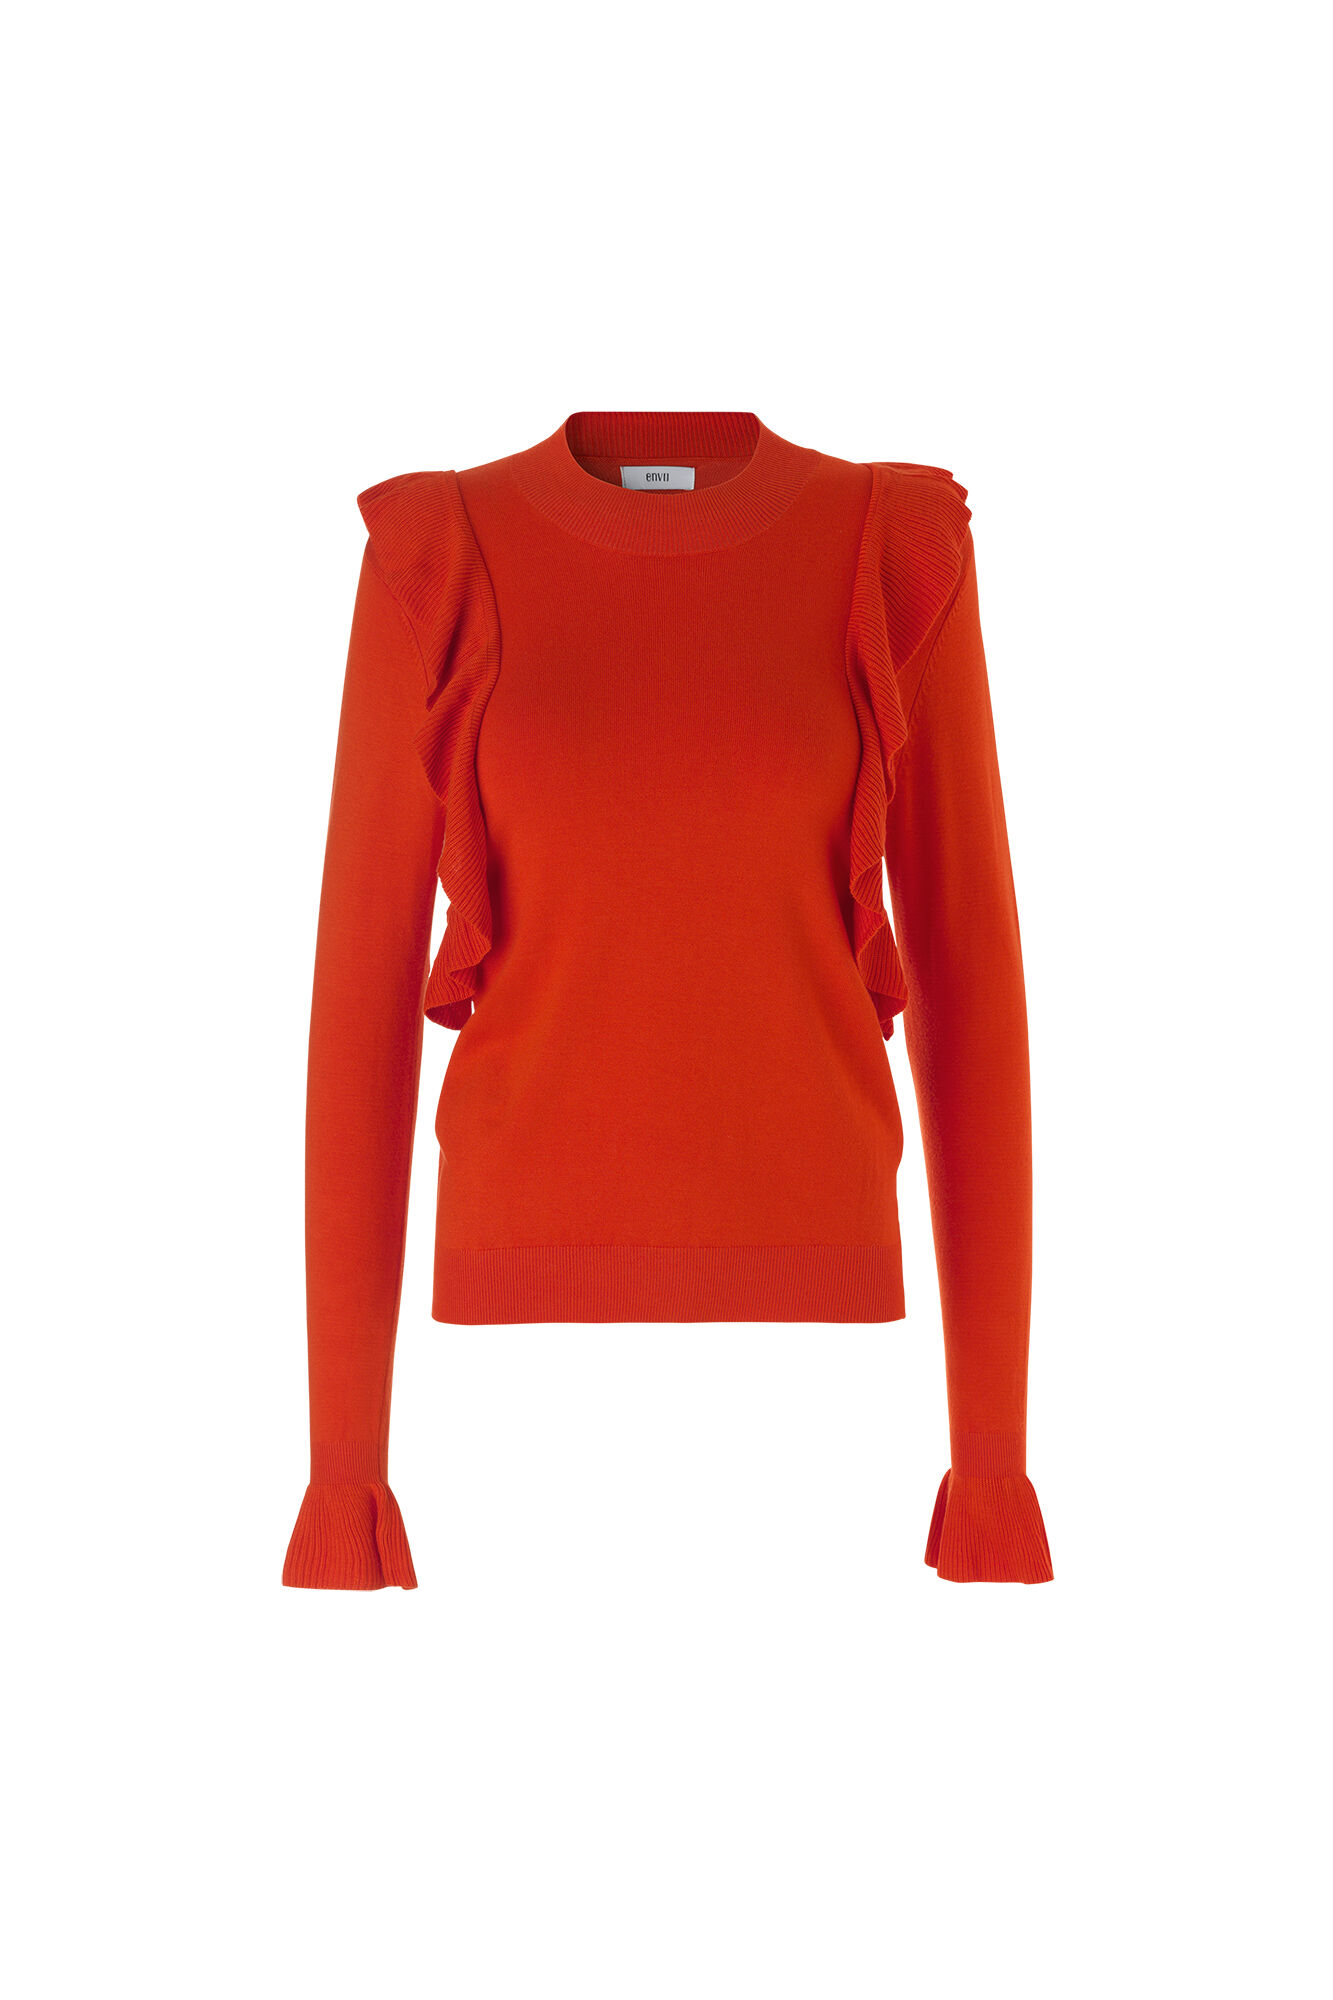 ENHARZEN LS KNIT 5163, ORANGE.COM